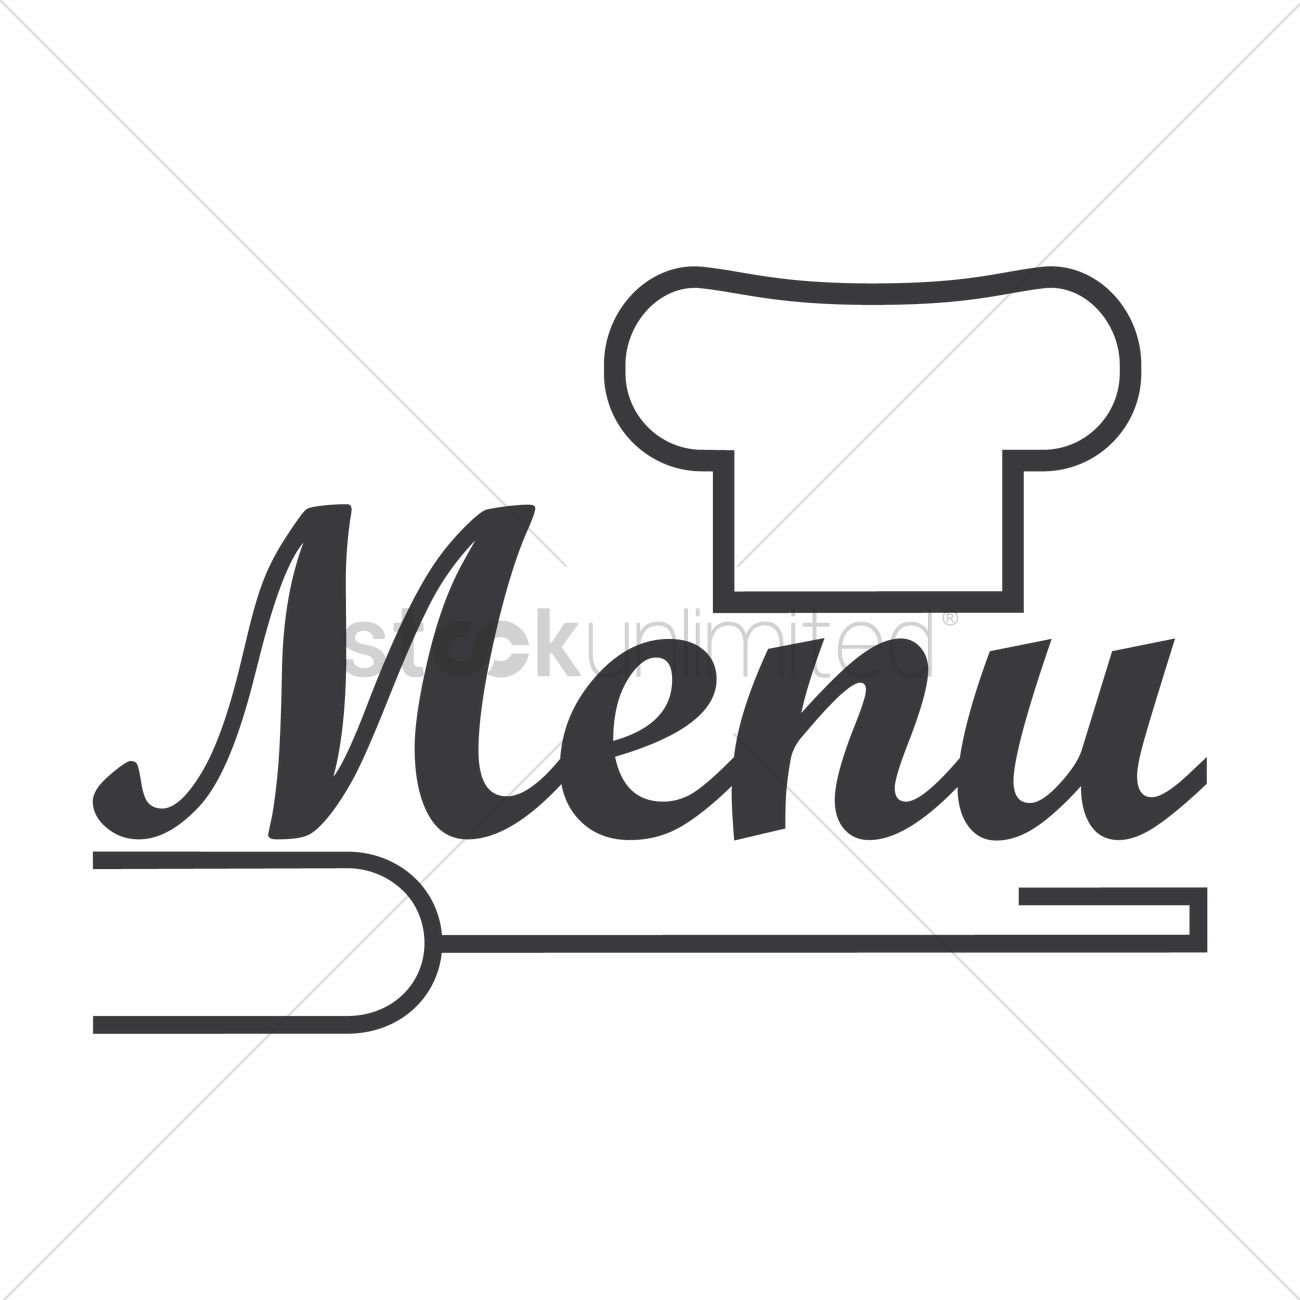 restaurant menu logo icon vector image - 1710145 | stockunlimited